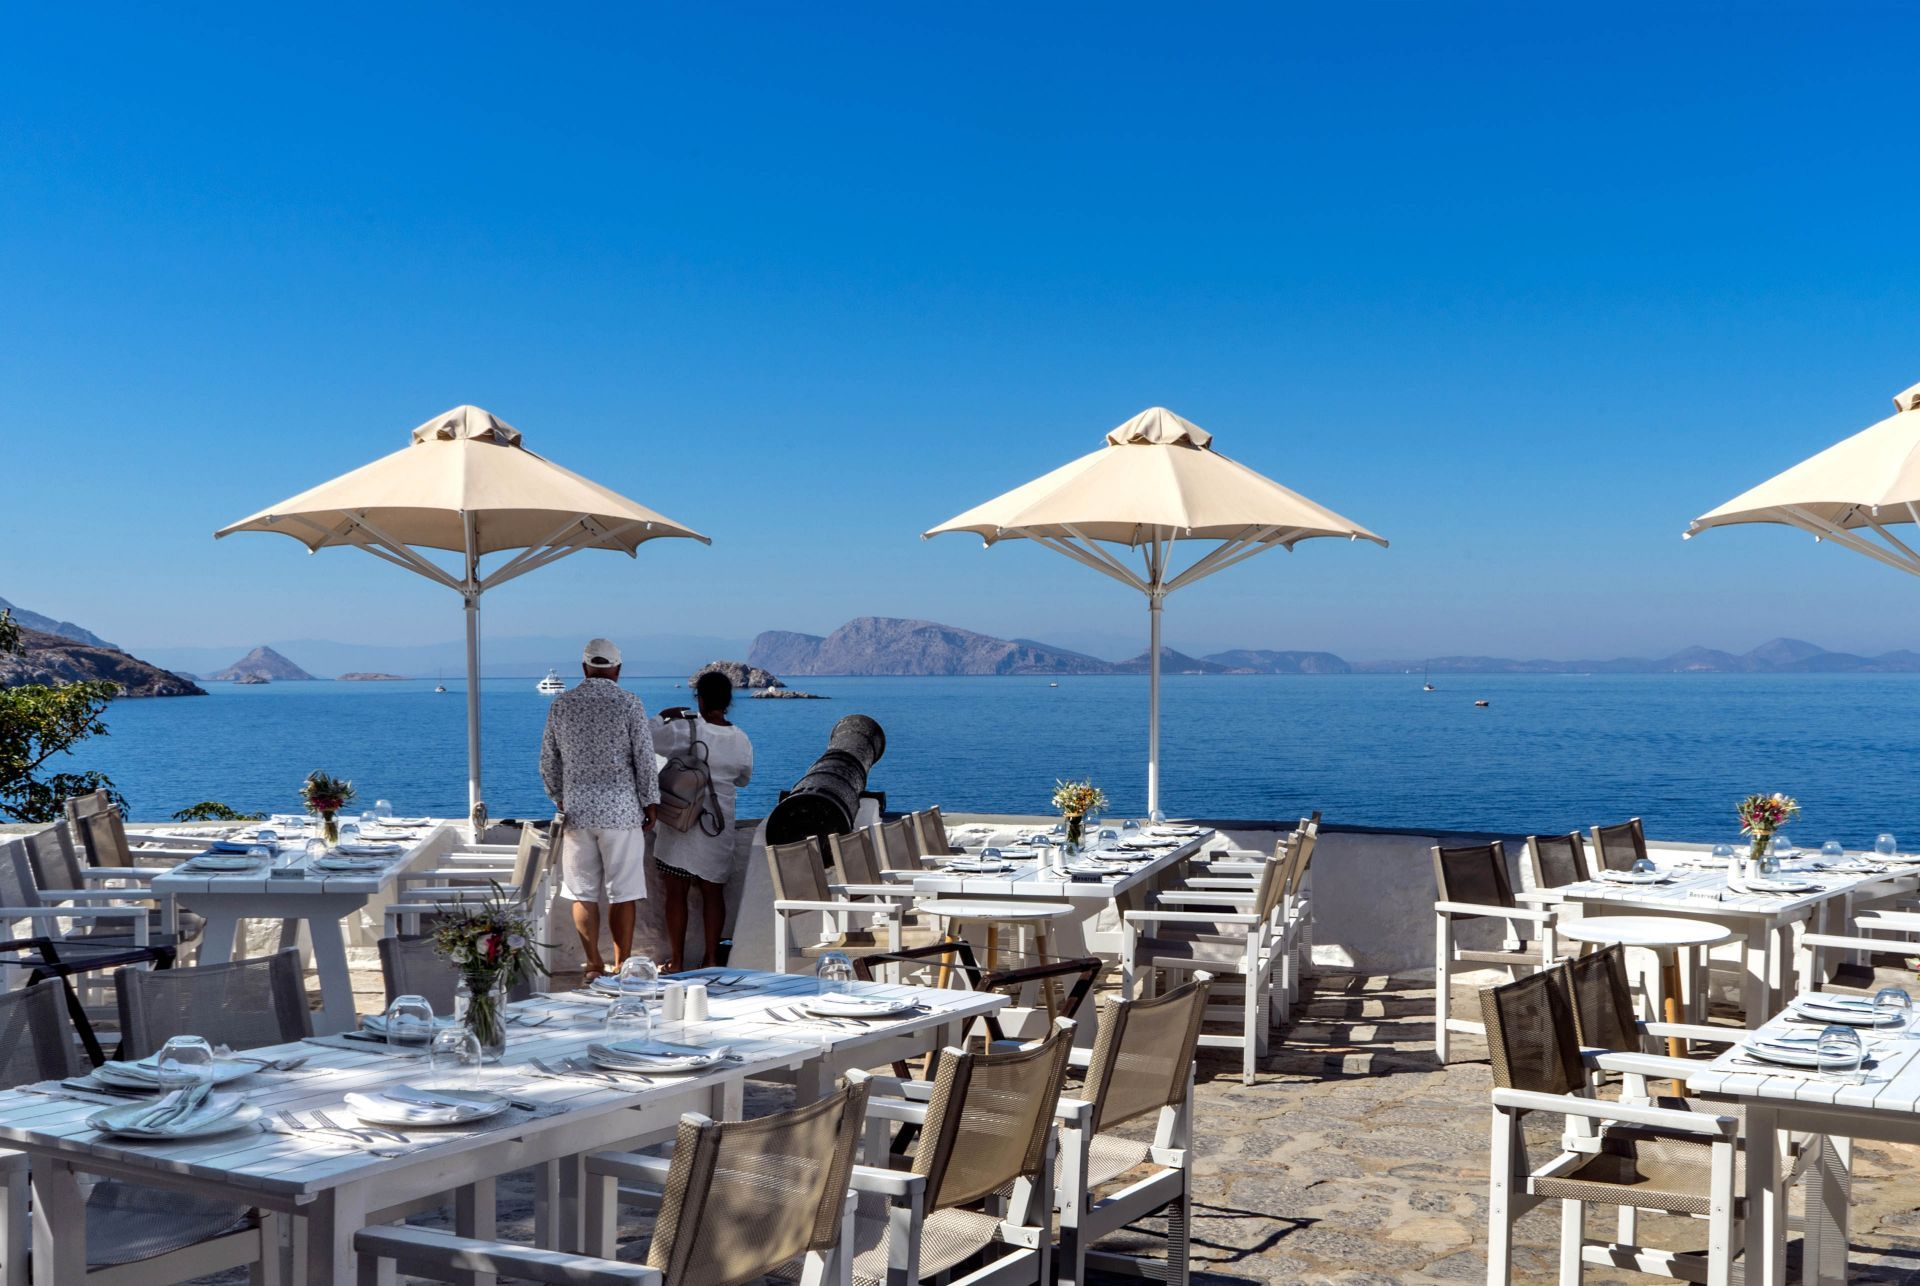 Places to eat and drink in Hydra